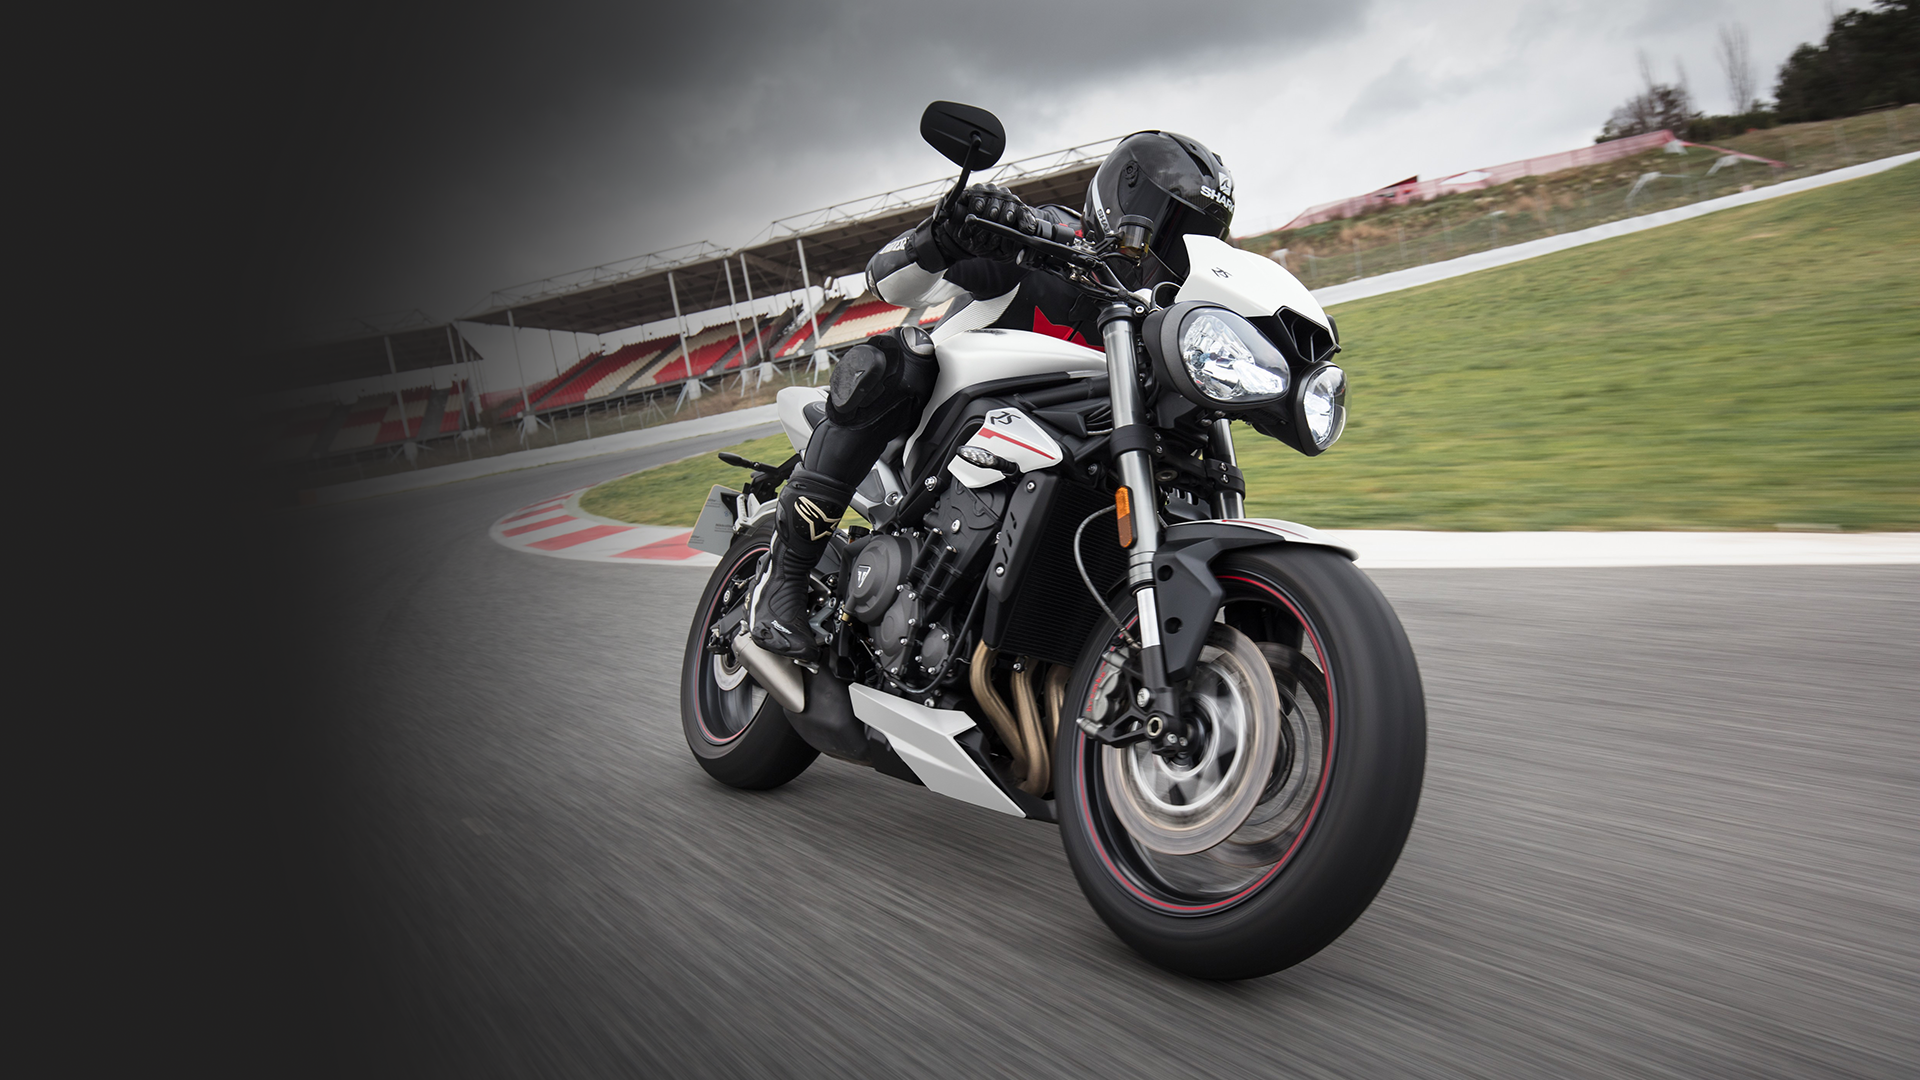 Triumph Street Triple RS in White racing on a race track